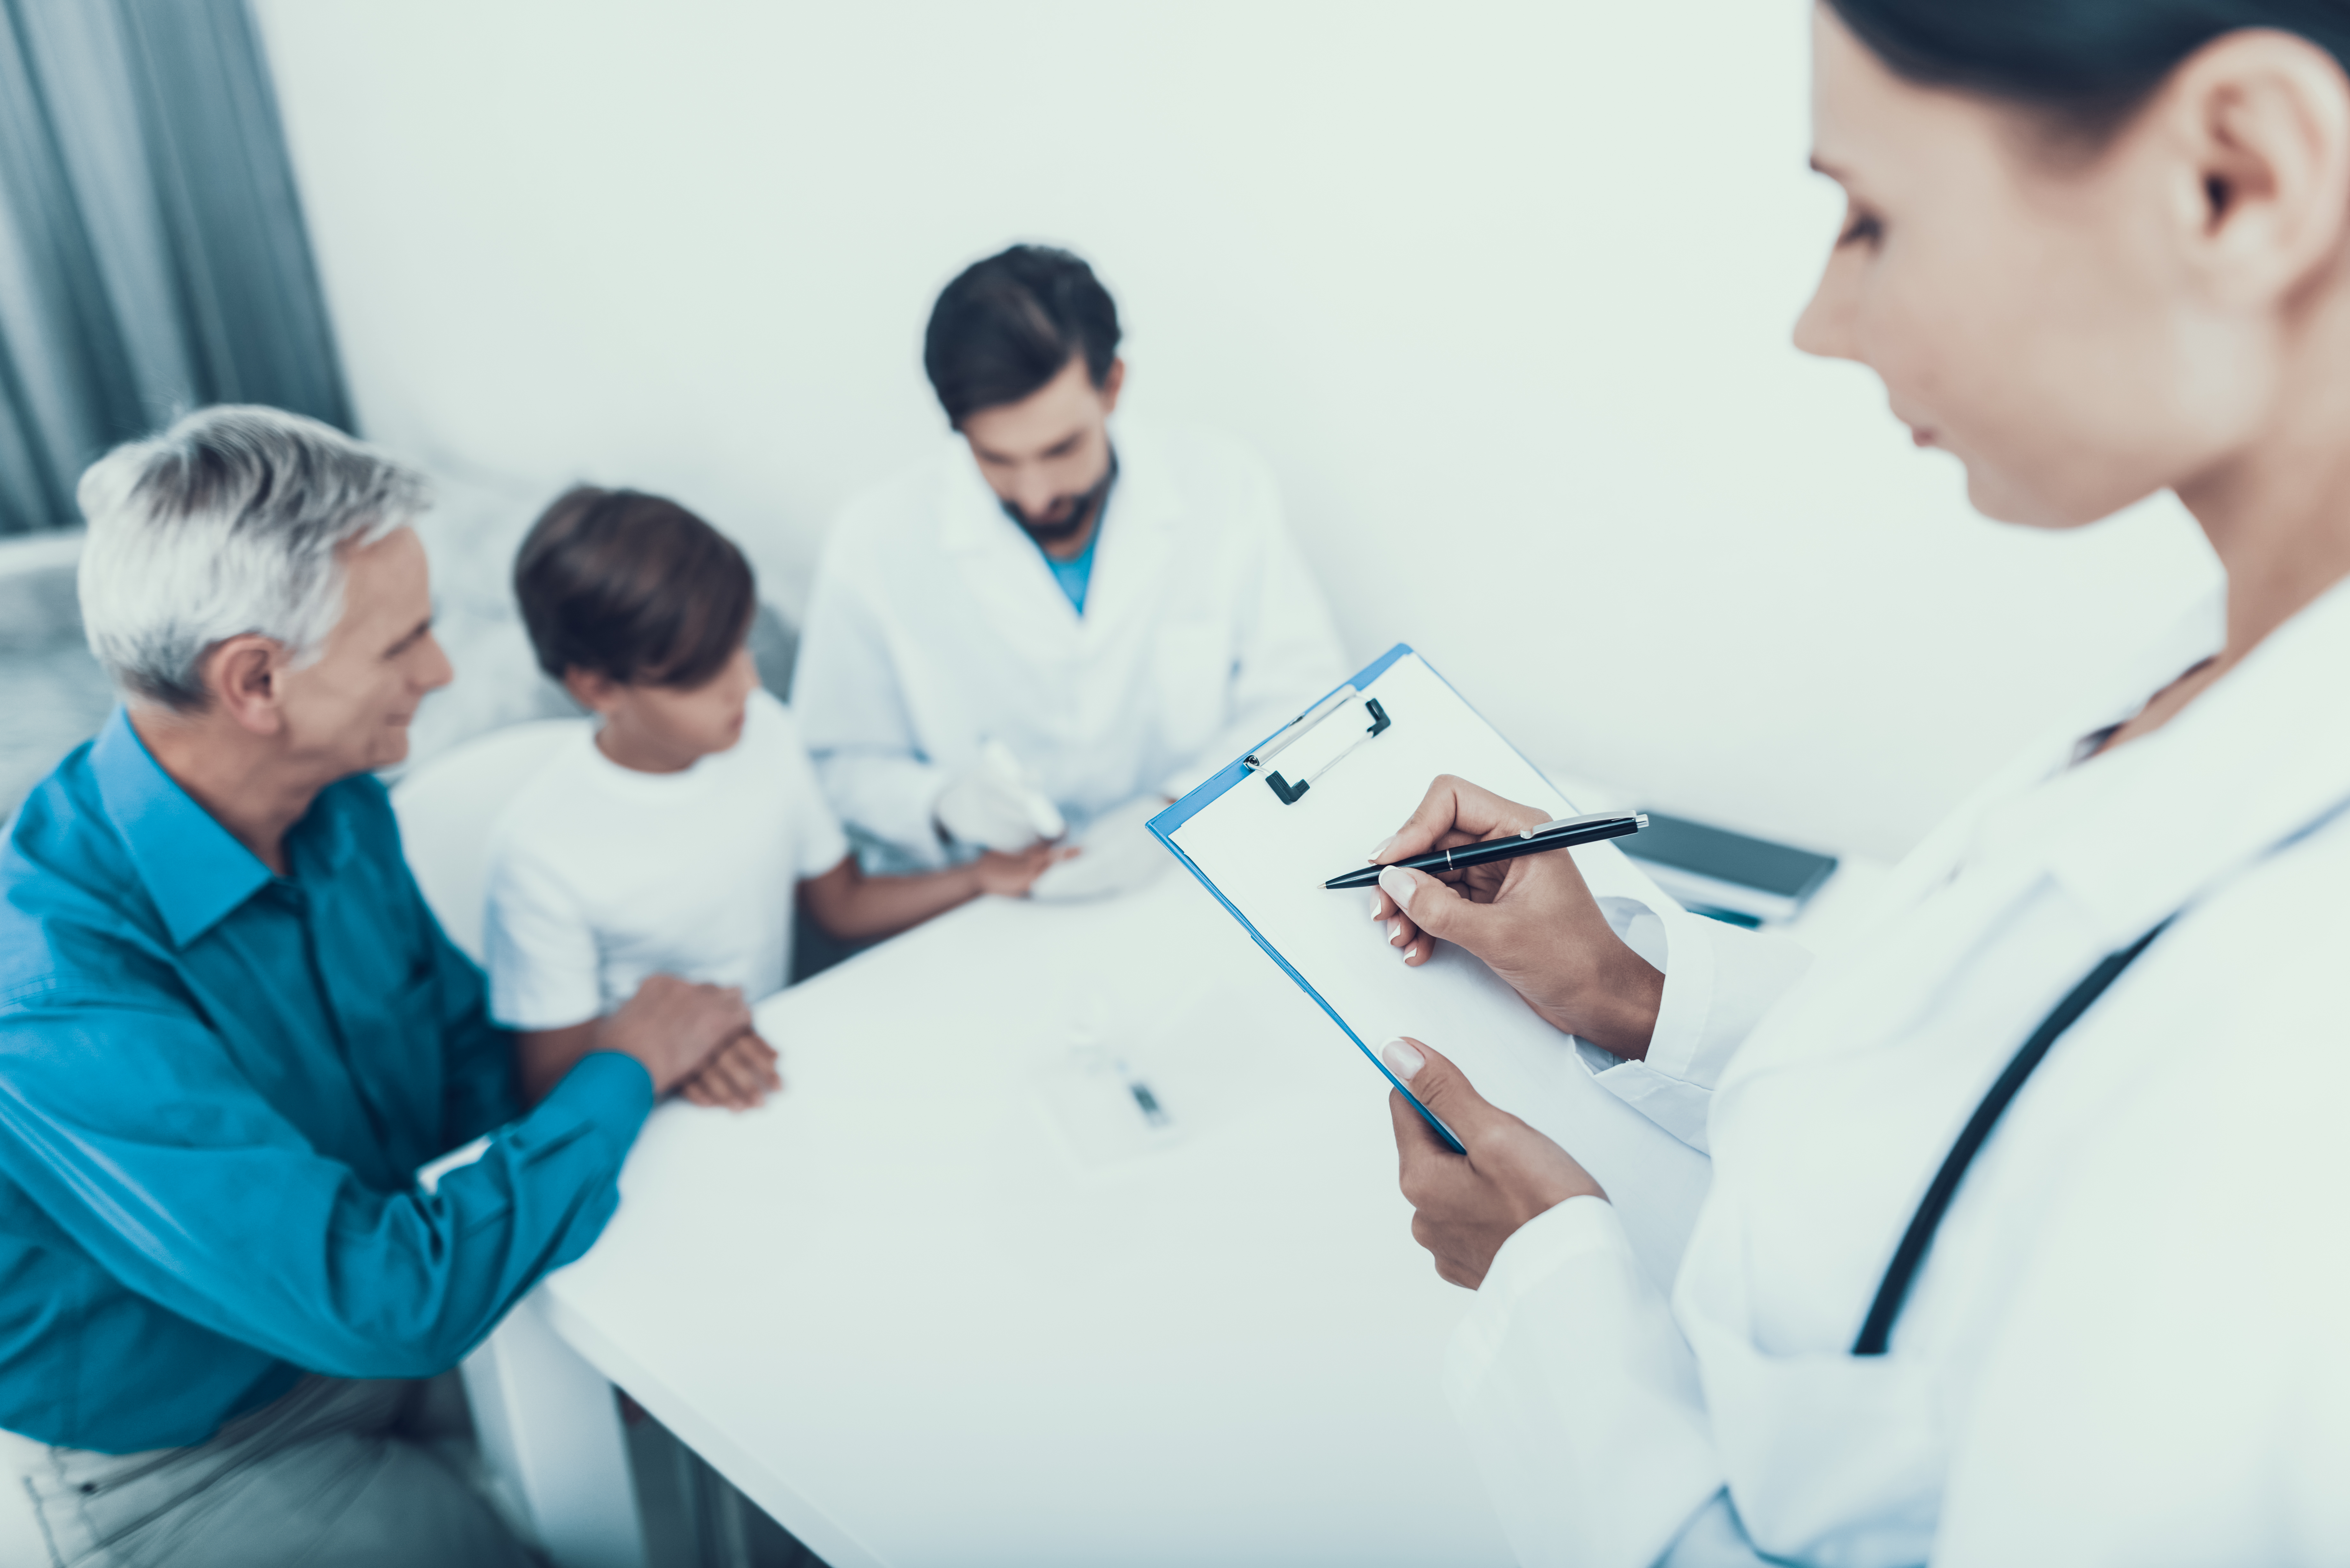 Who Are the Types of Doctors That Investigate Diseases